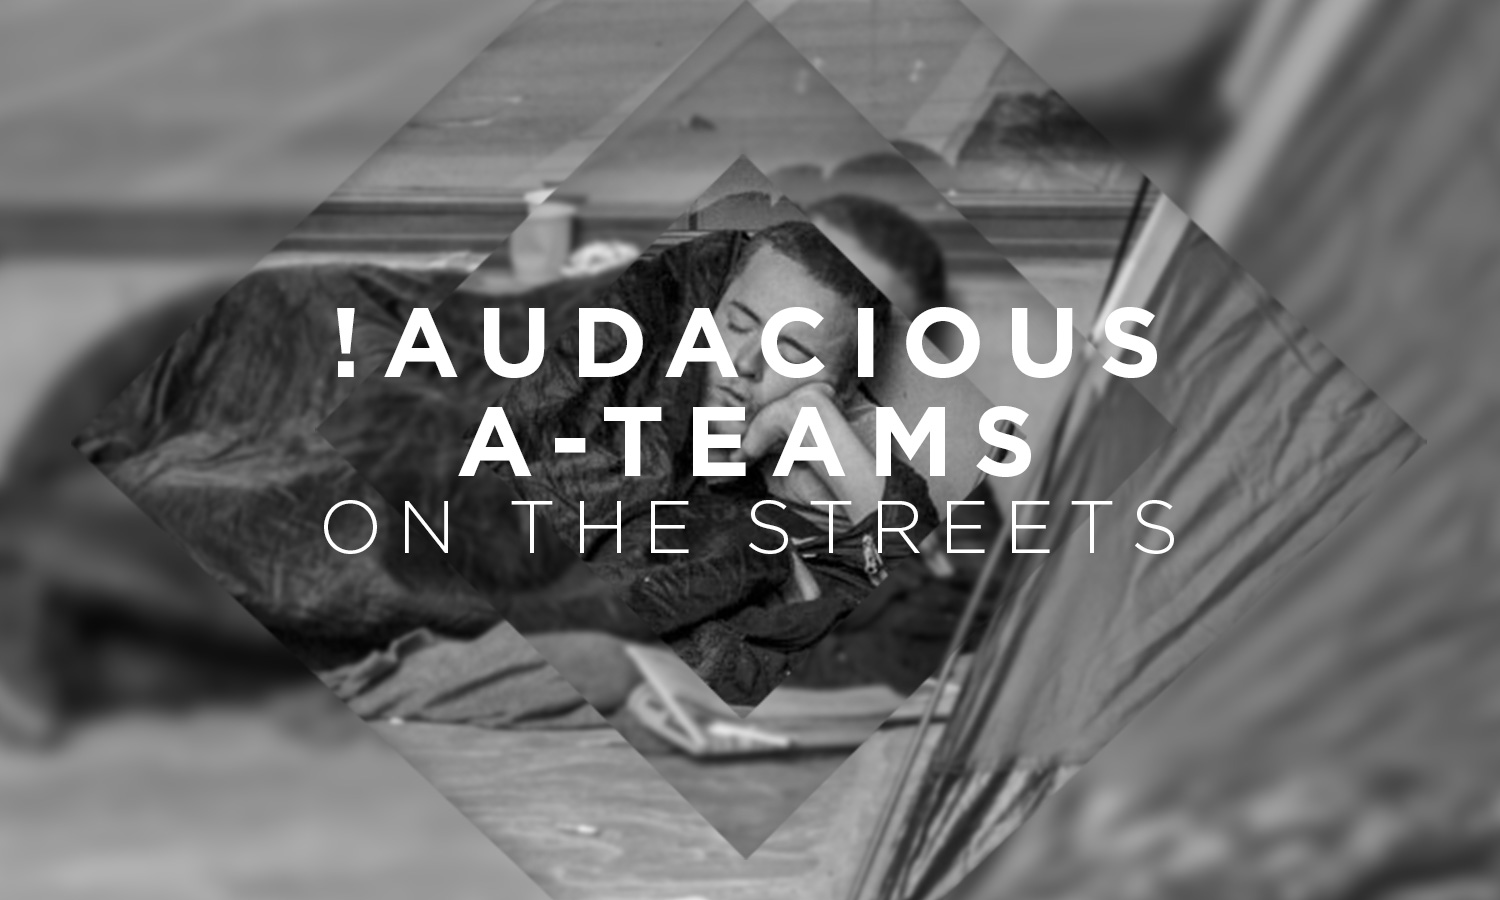 Monday 11th February – Saturday 16th February – A-Teams on the streets